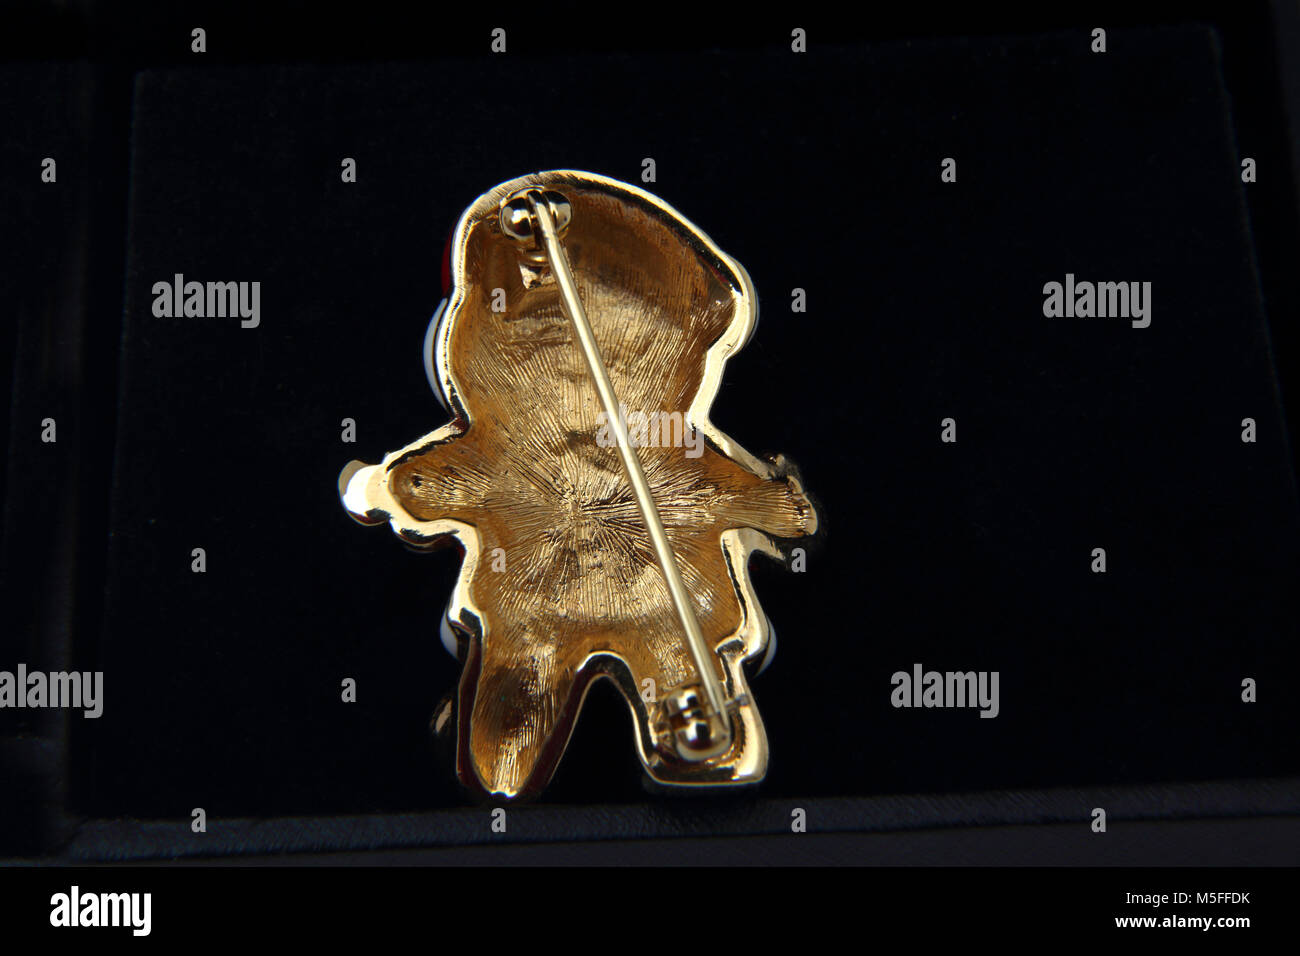 Back View Of Gold Bear Brooch With Enamel Santa Hat And Suit - Stock Image